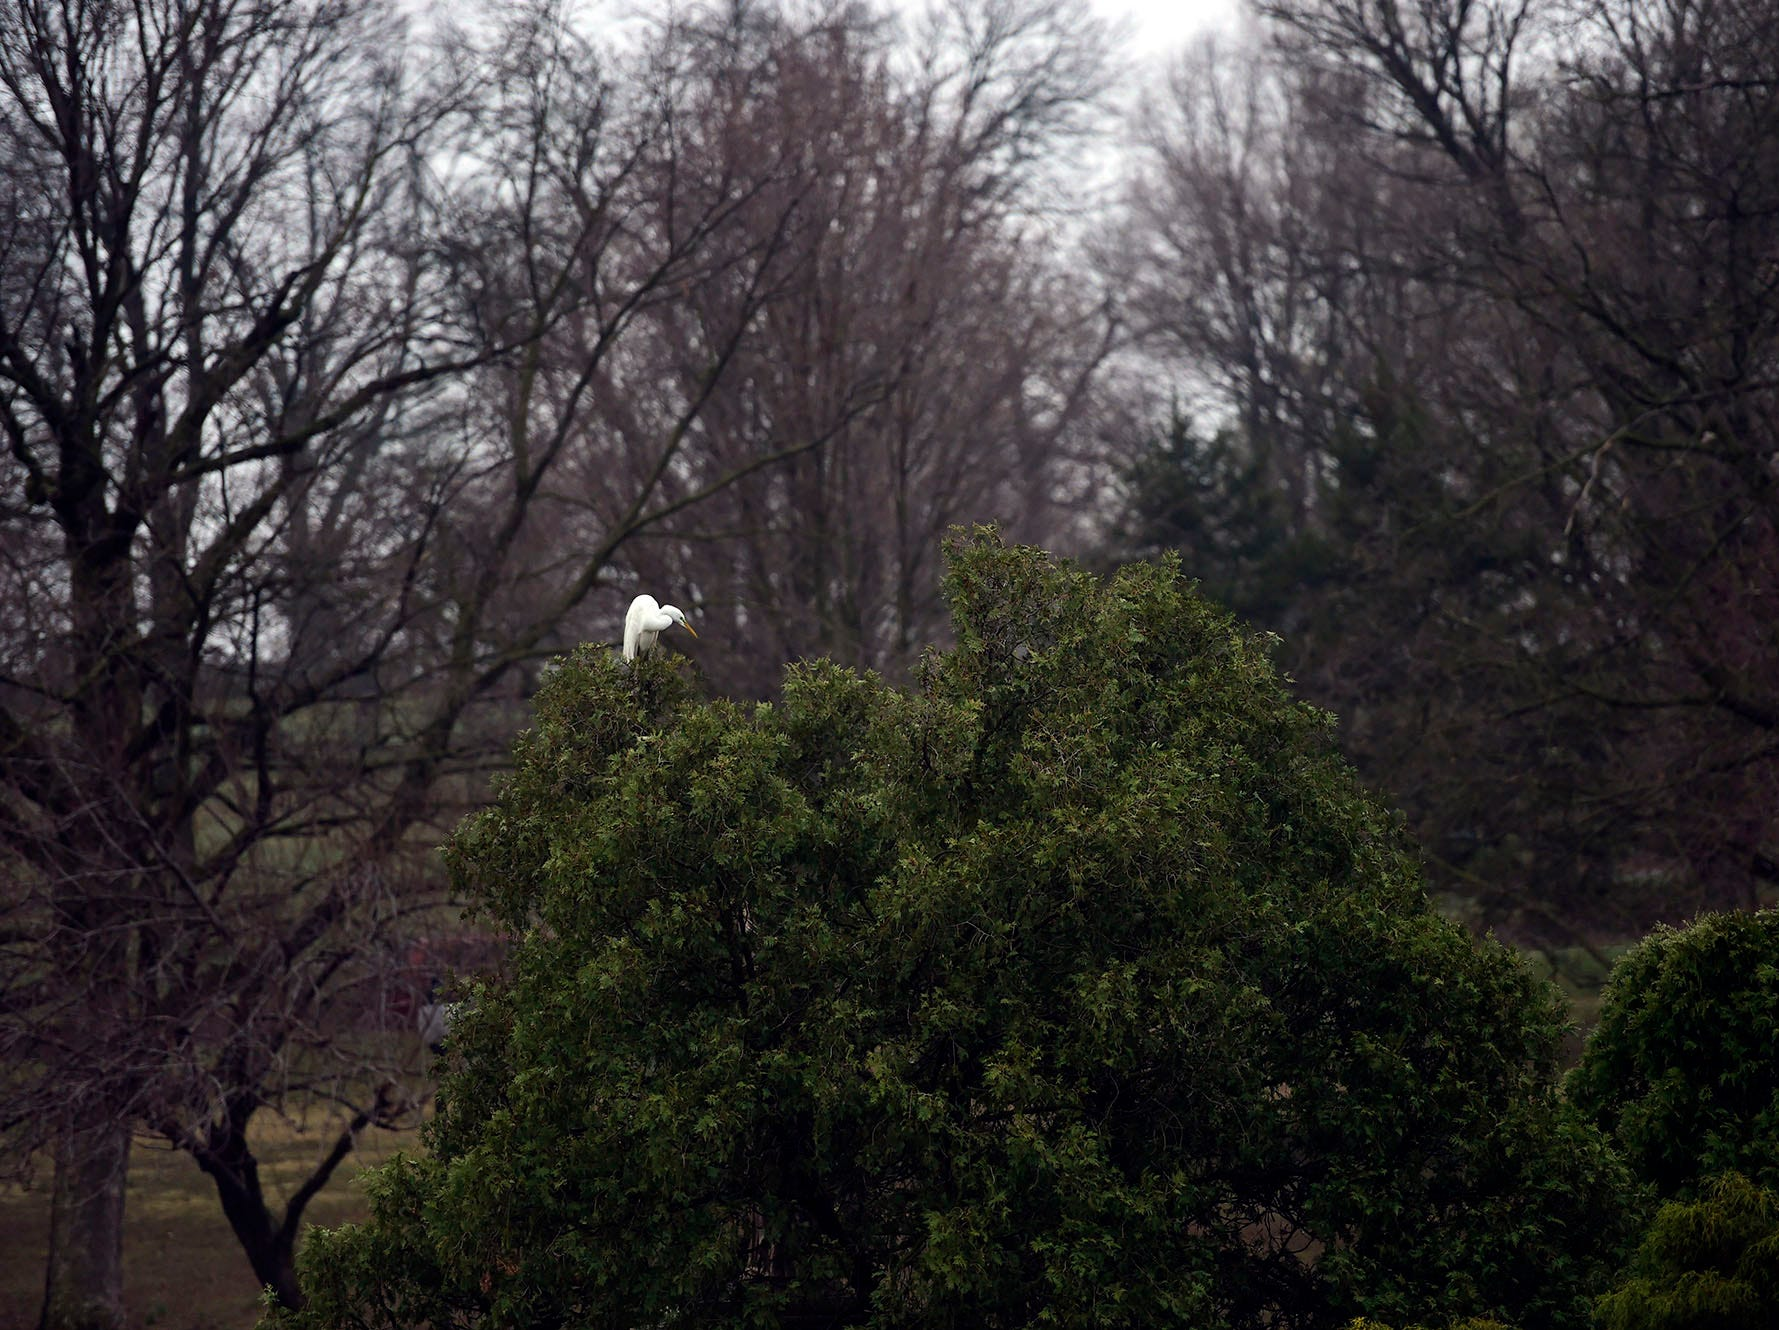 A great egret perches on a treetop at Kiwanis Lake in York Saturday, April 6, 2019.